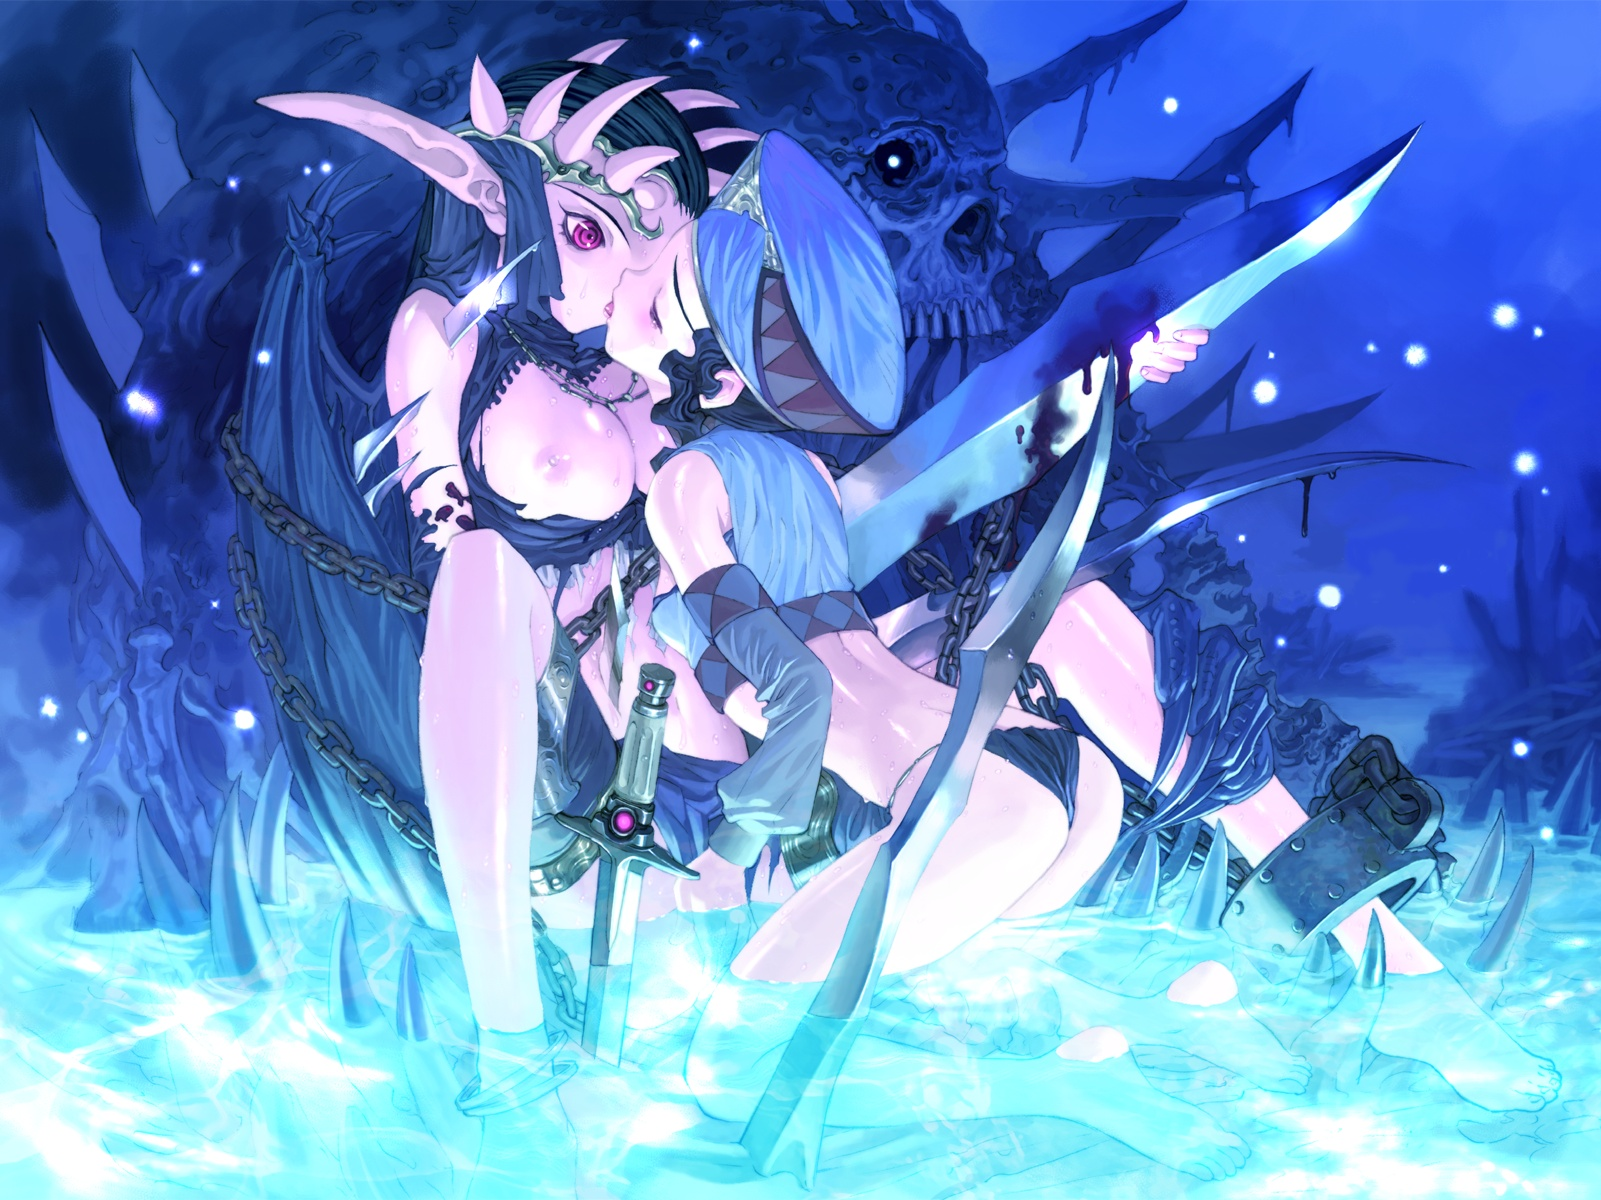 barefoot blood breasts chain devil hat horns kiss nipples sword tagme underwater water weapon wings yuri